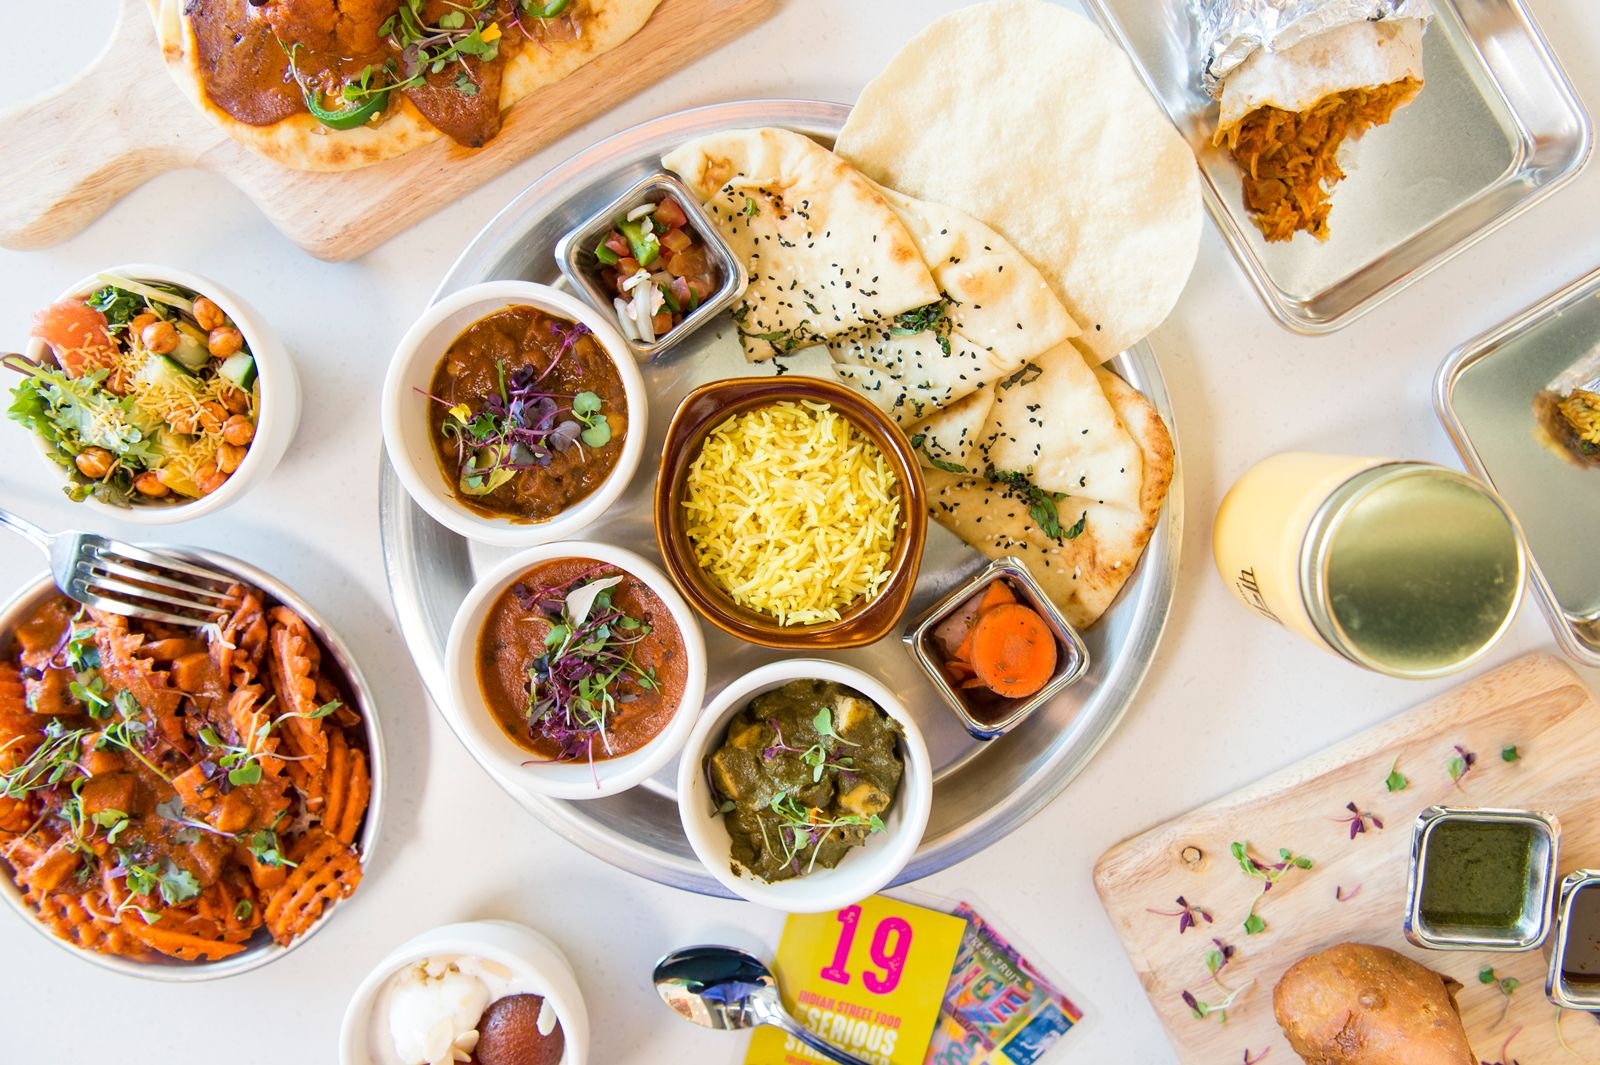 Indian fast casual concept Curry Up Now has secured its first Sacramento, Calif. location at 1610 R Street in the Ice Blocks retail center. Franchisee and local native David Leuterio plans to open doors in Summer 2019.